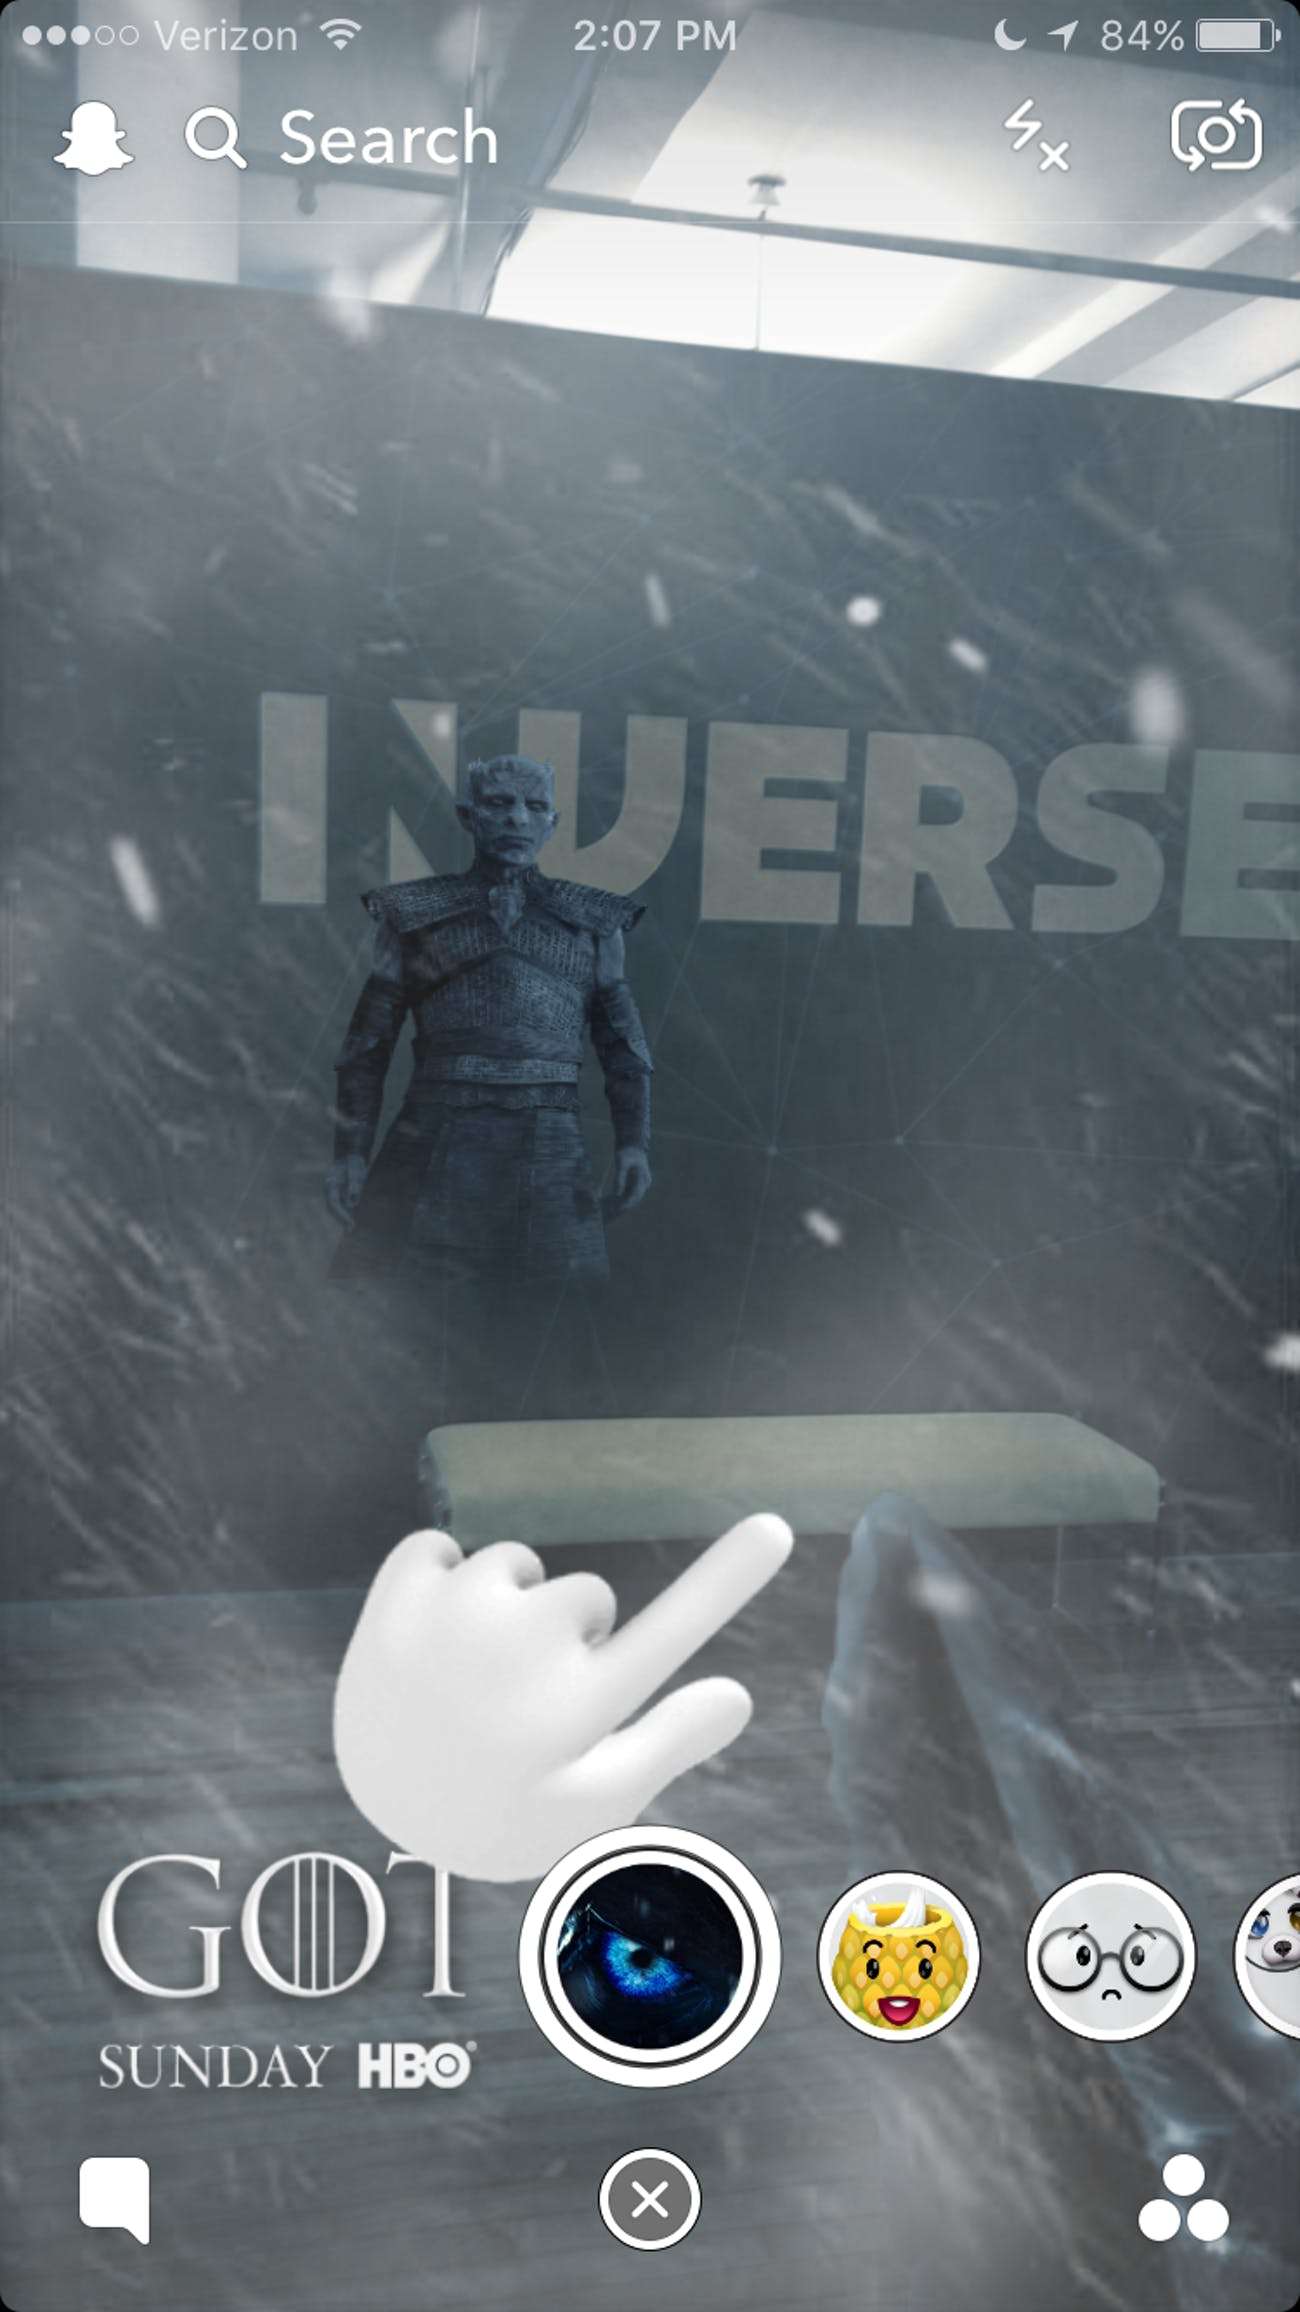 White Walkers invade Inverse with the new 'Game of Thrones' Snapchat filter